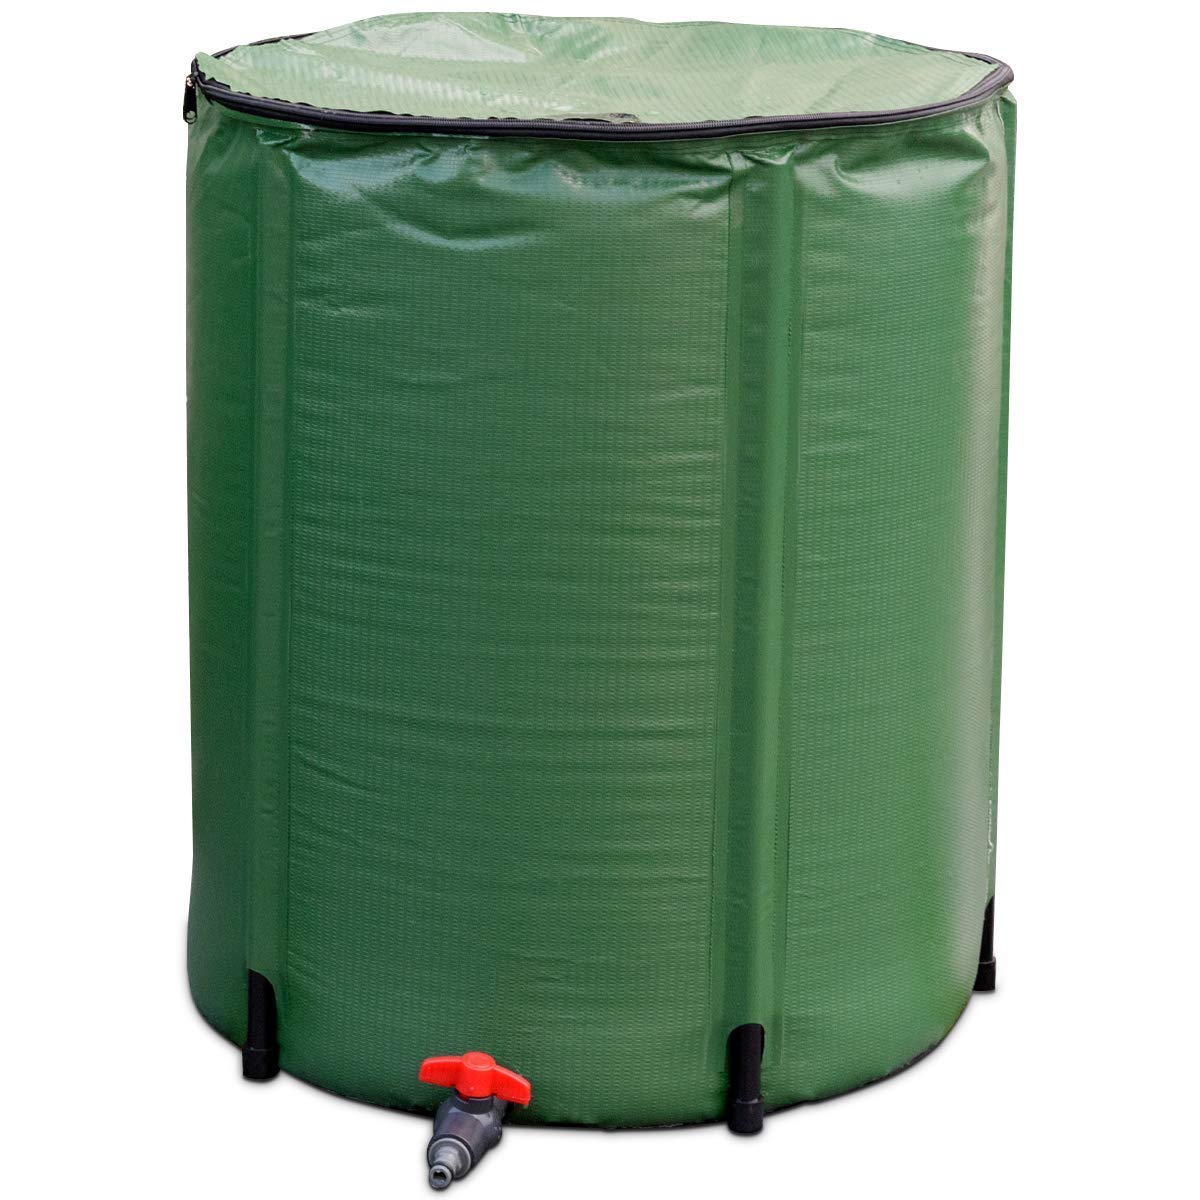 Goflame Rain Barrel Water Collector 50 Gallon Portable Foldable Collapsible Tank,Spigot Filter Water Storage Container, Green (50 Gallon) by Golflame